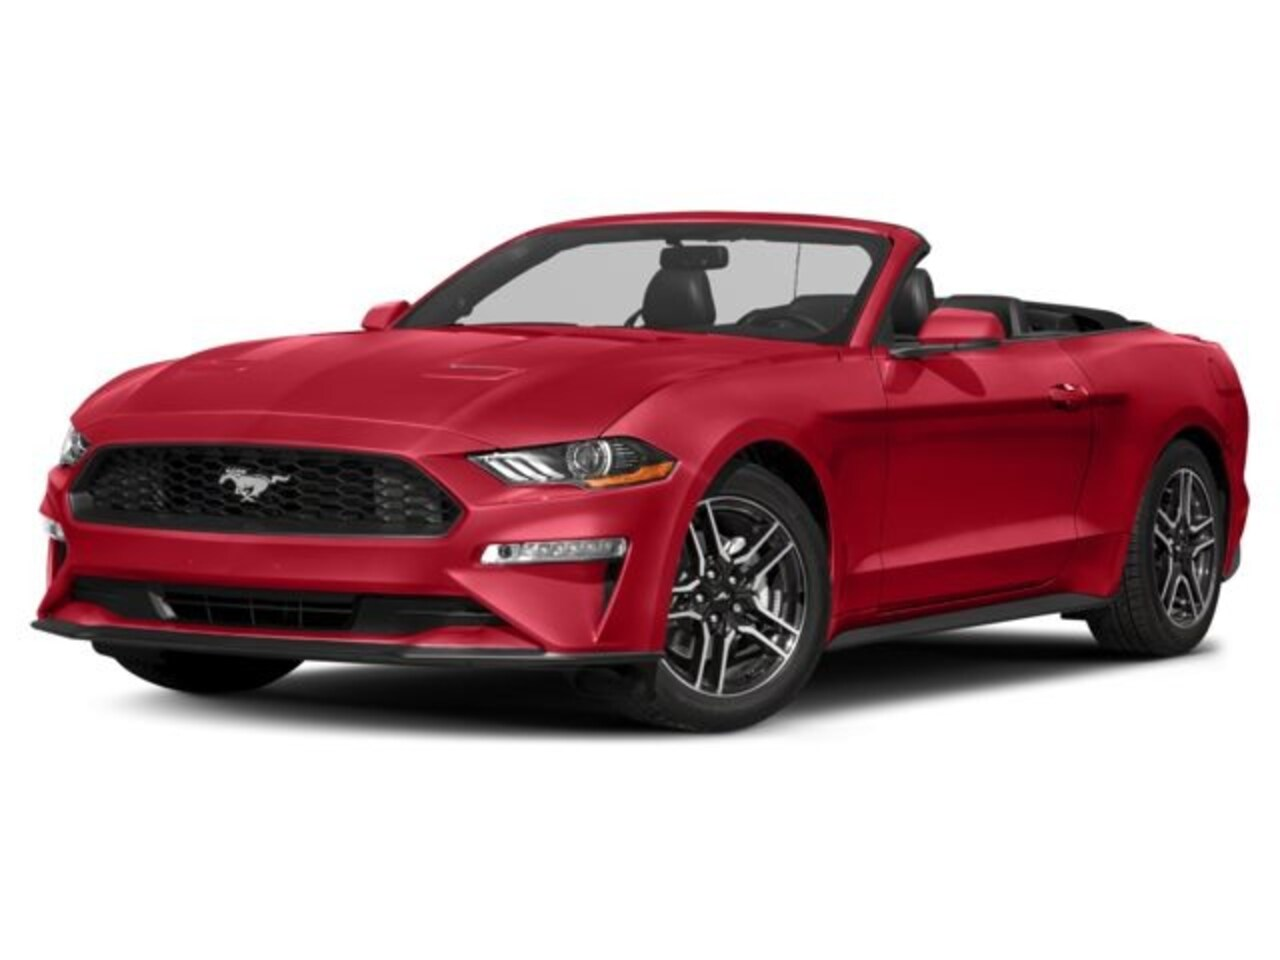 2018 Ford Mustang ECOBOOST PREMIUM 200A 10 SPEED AUTO Convertible